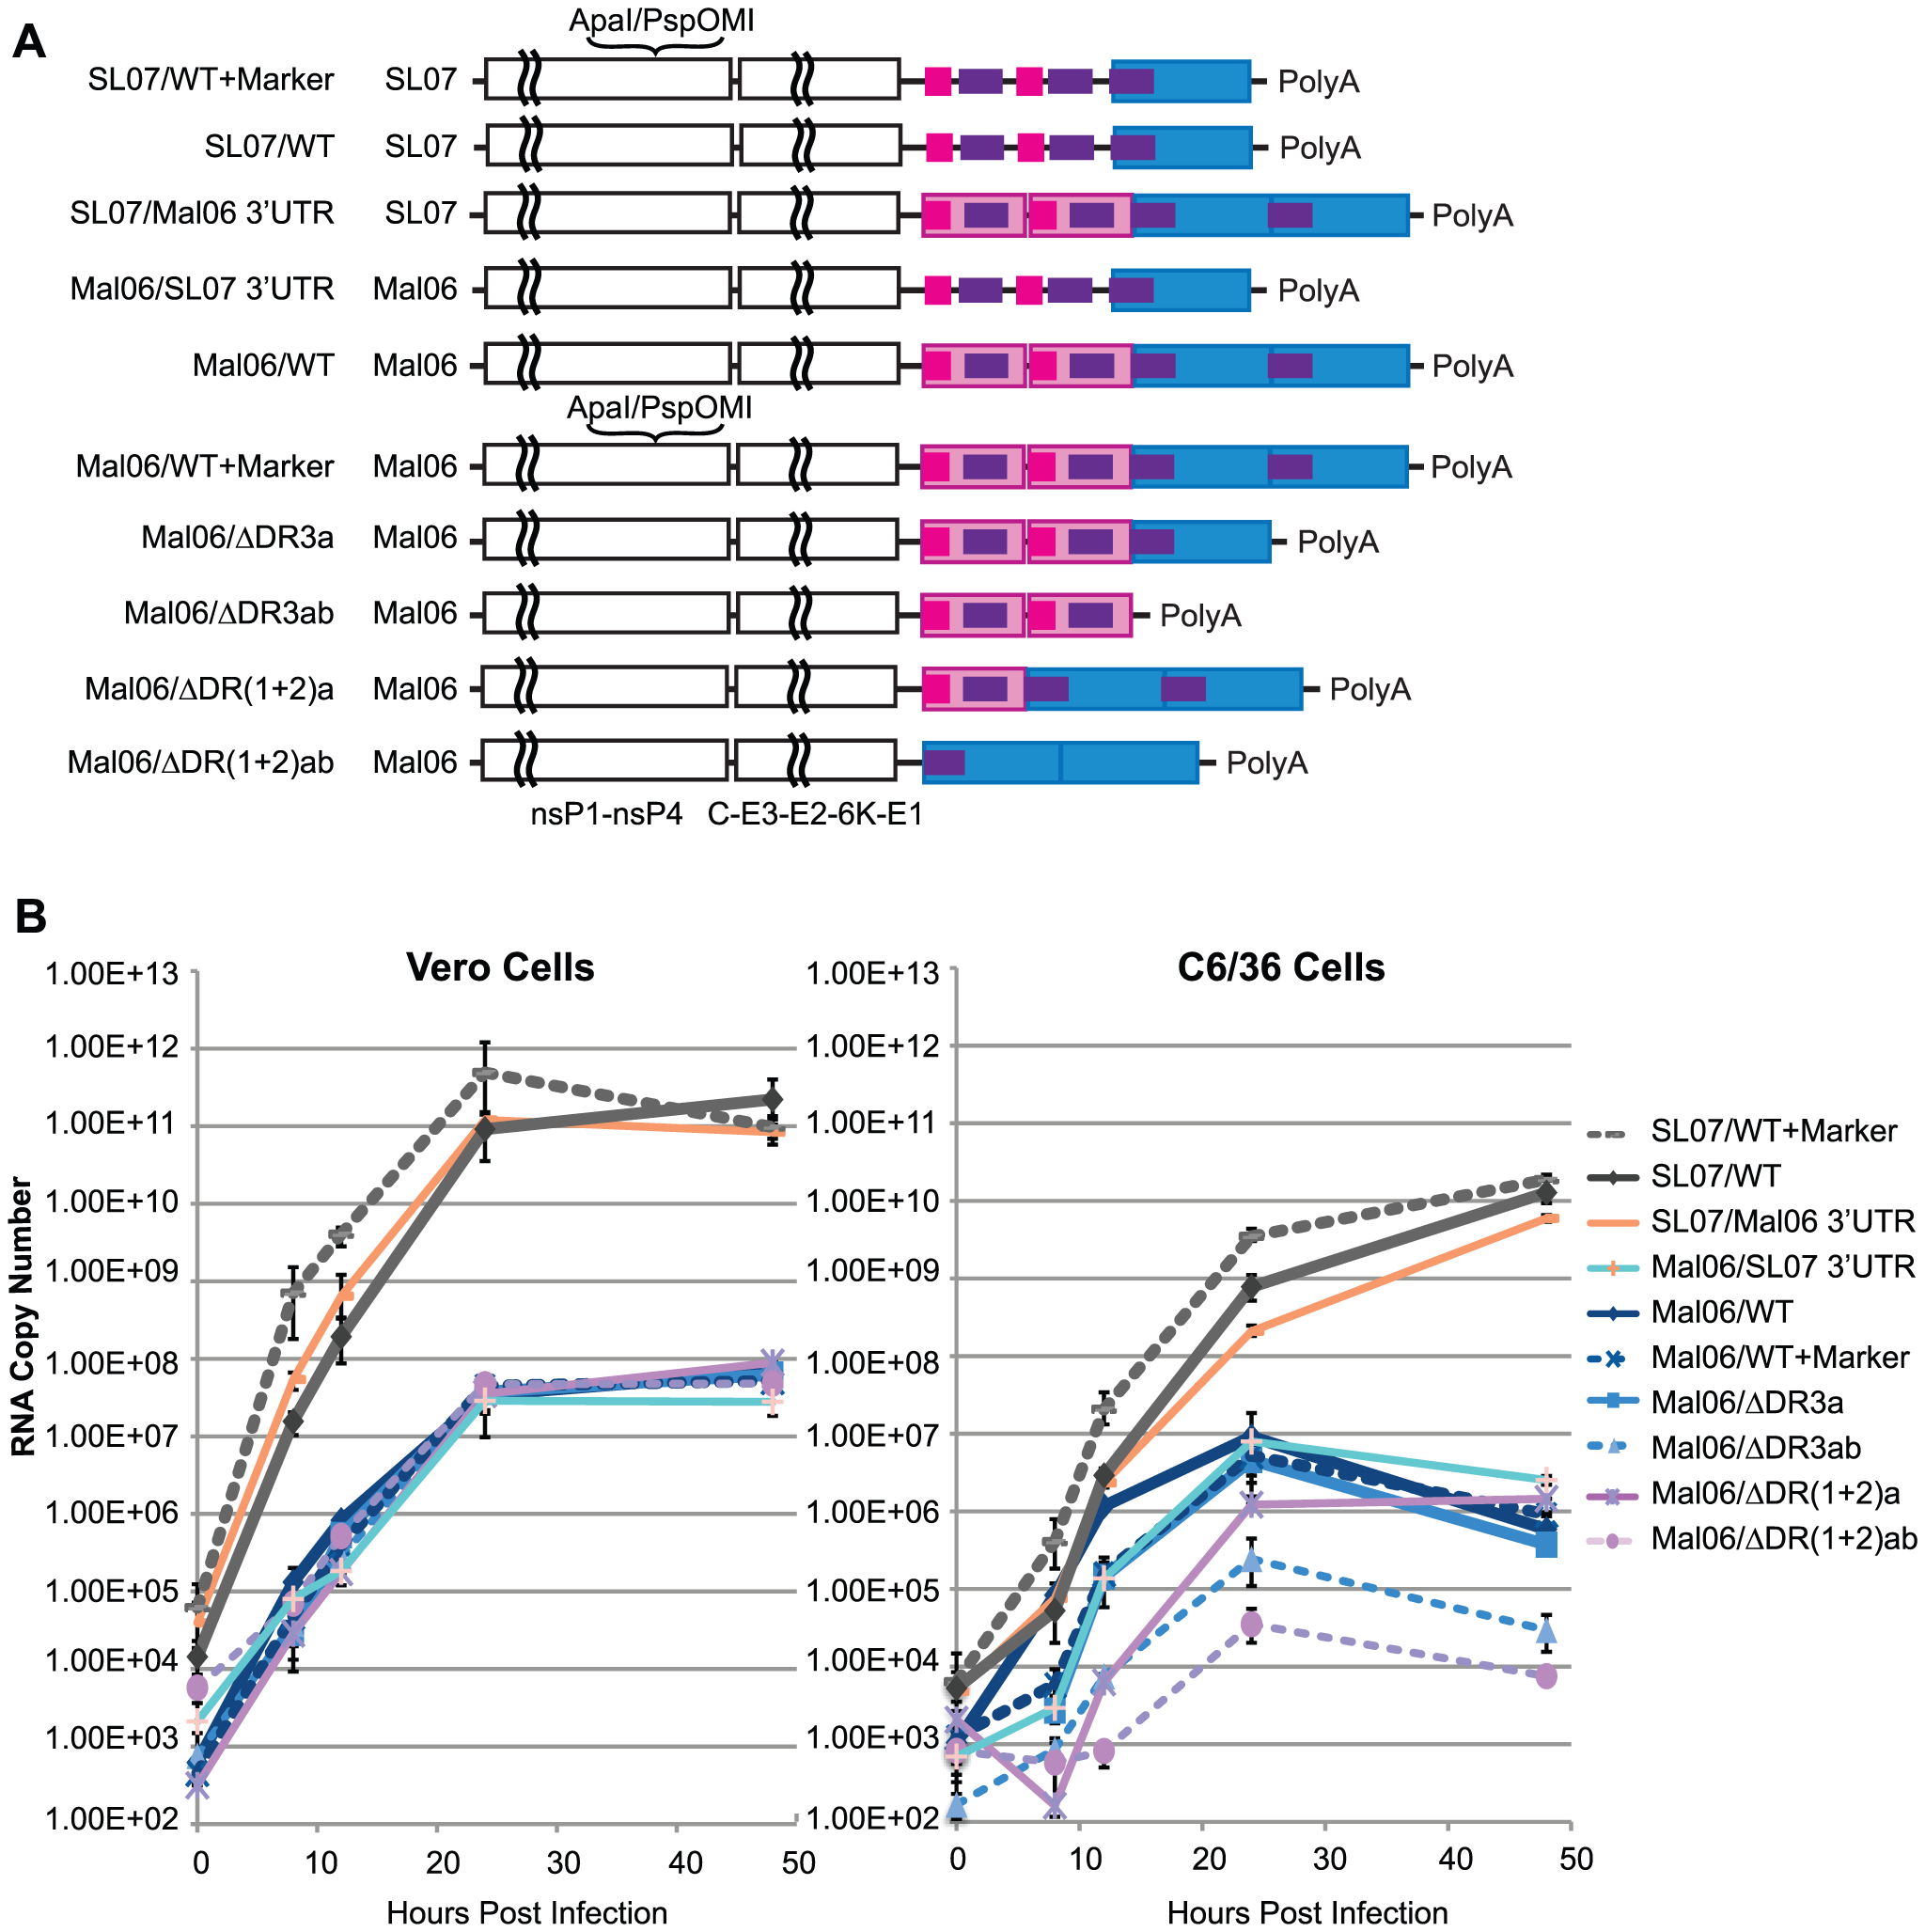 Replication kinetics of CHIKV variants in Vero and C6/36 cells.